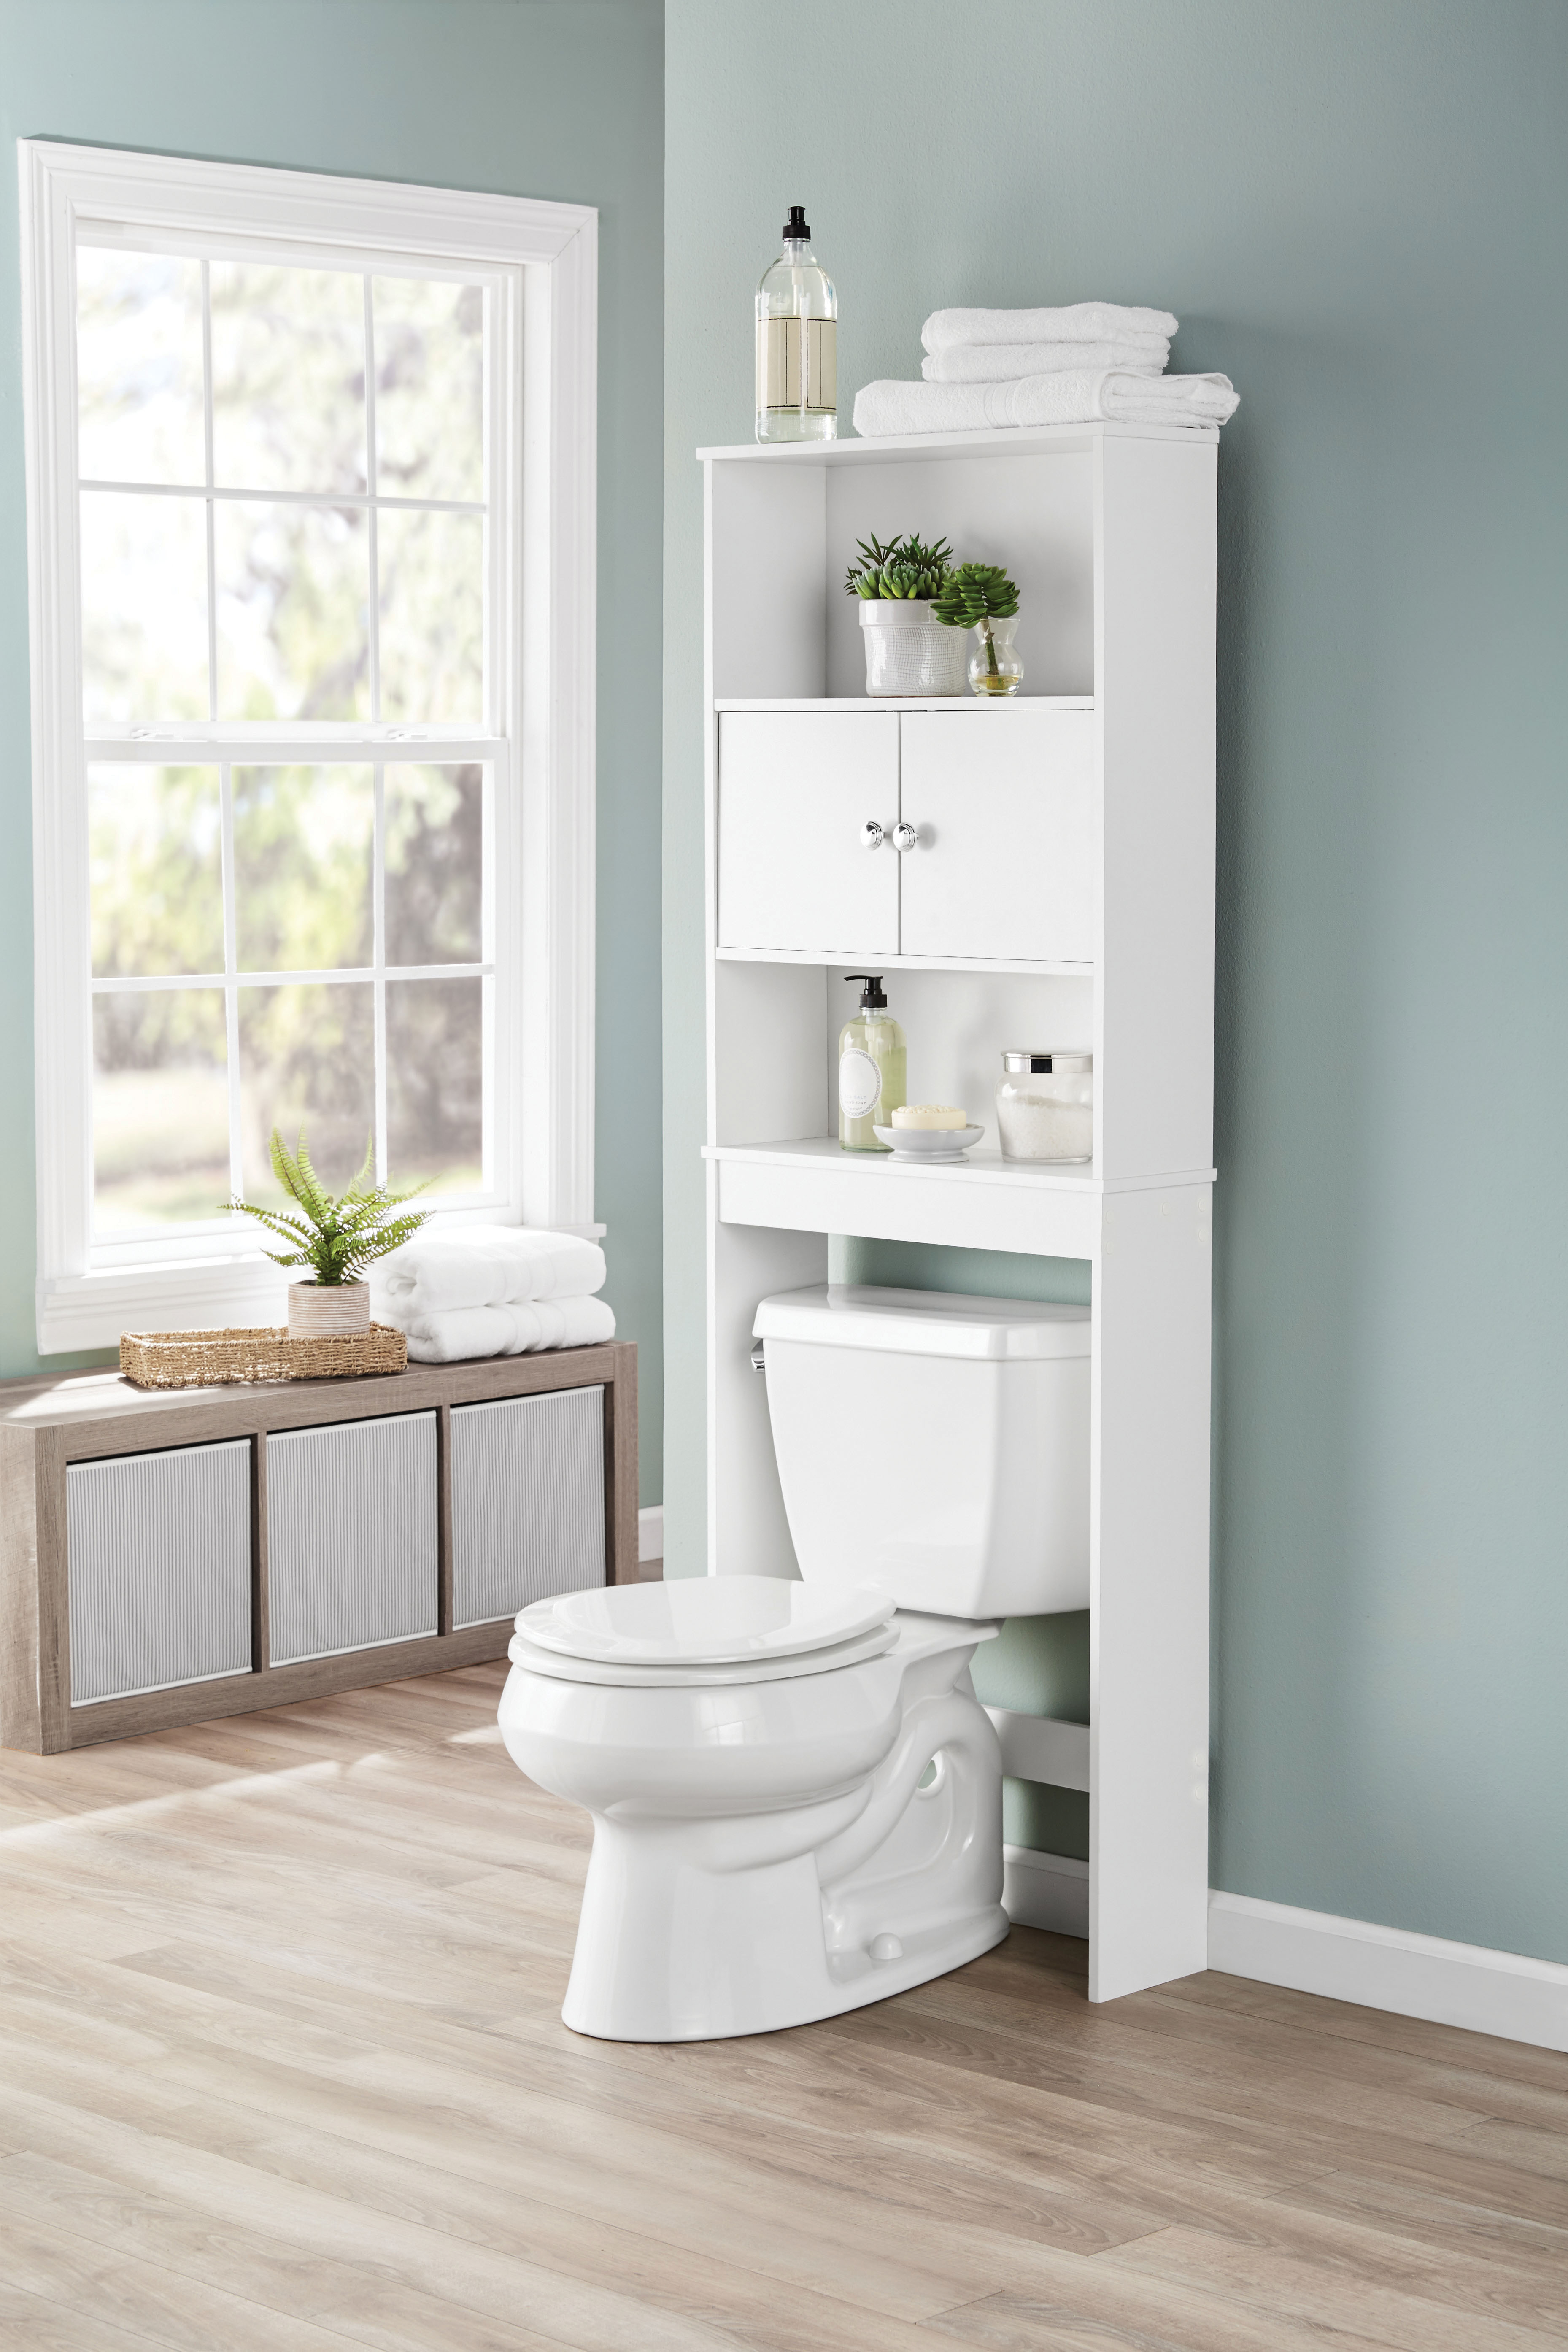 Mainstays Bathroom Storage Over The Toilet Space Saver White pertaining to dimensions 3717 X 5575